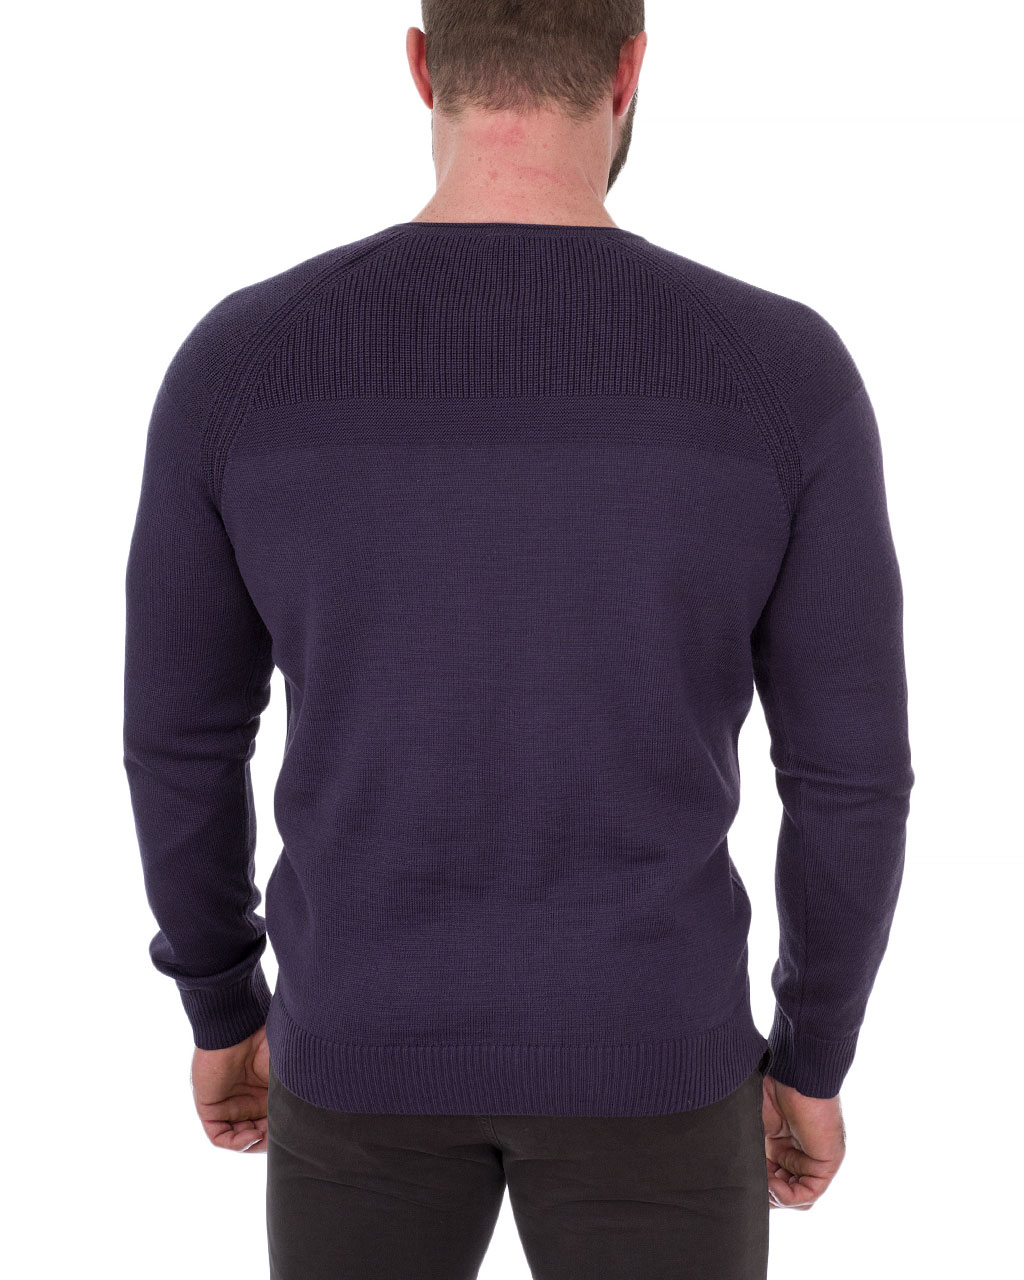 Men's jumper 7450-45532-860/19-20--2 (6)